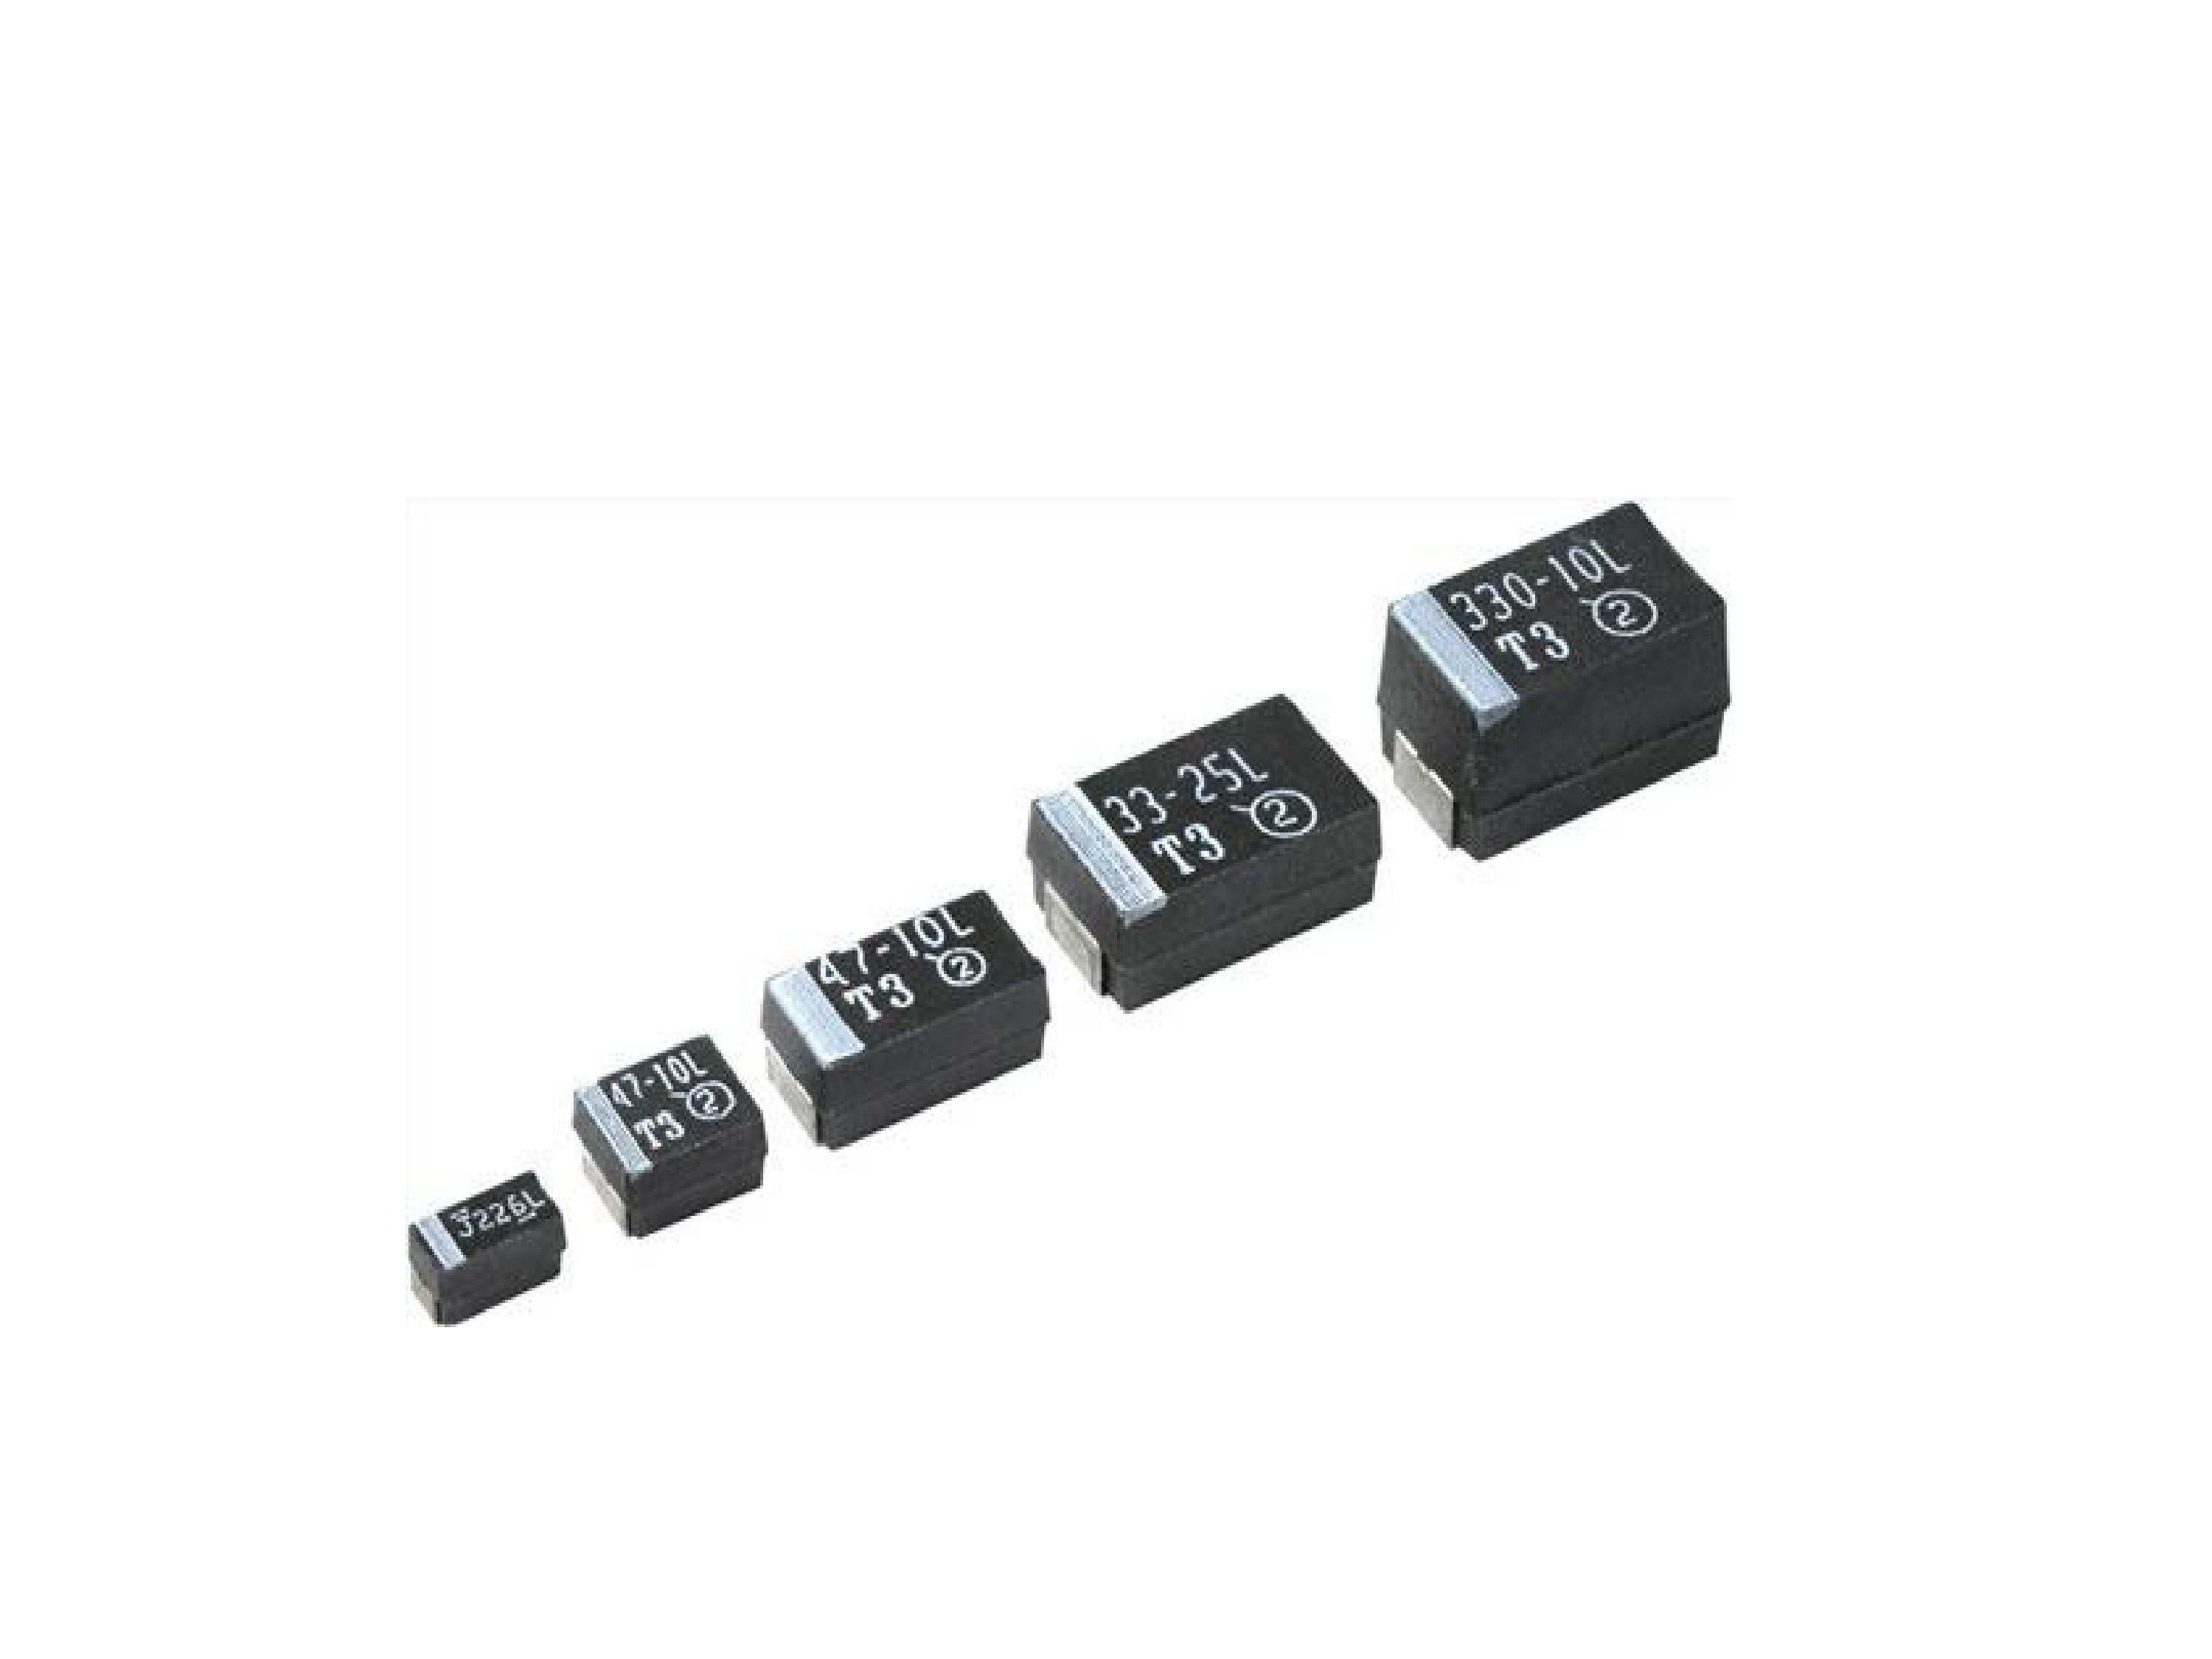 Passive Components | Page 1097 | ComKey in - India's Online